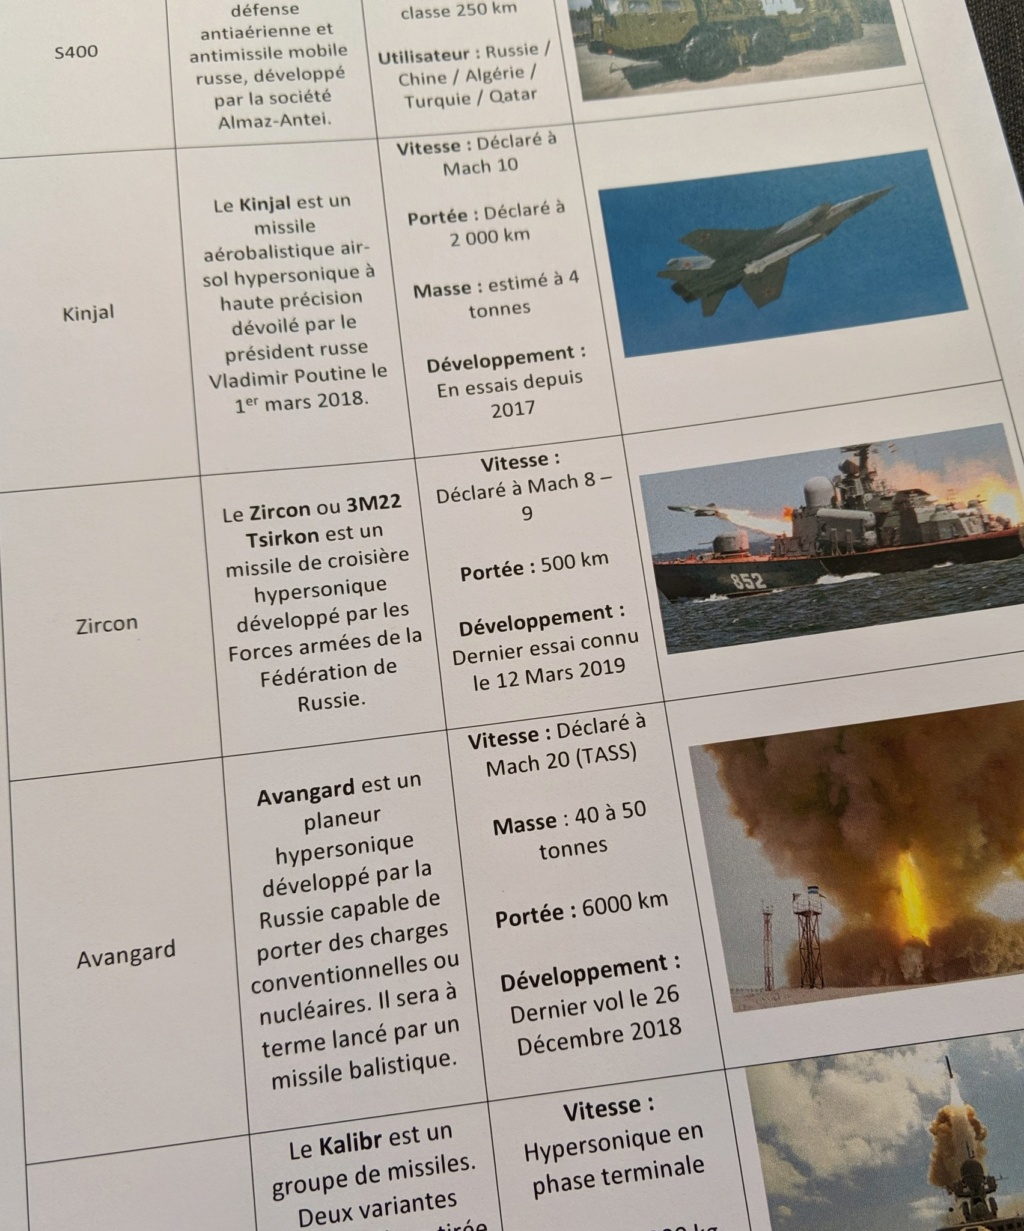 3M22 Zircon Hypersonic Cruise Missile - Page 15 D7ukdl10